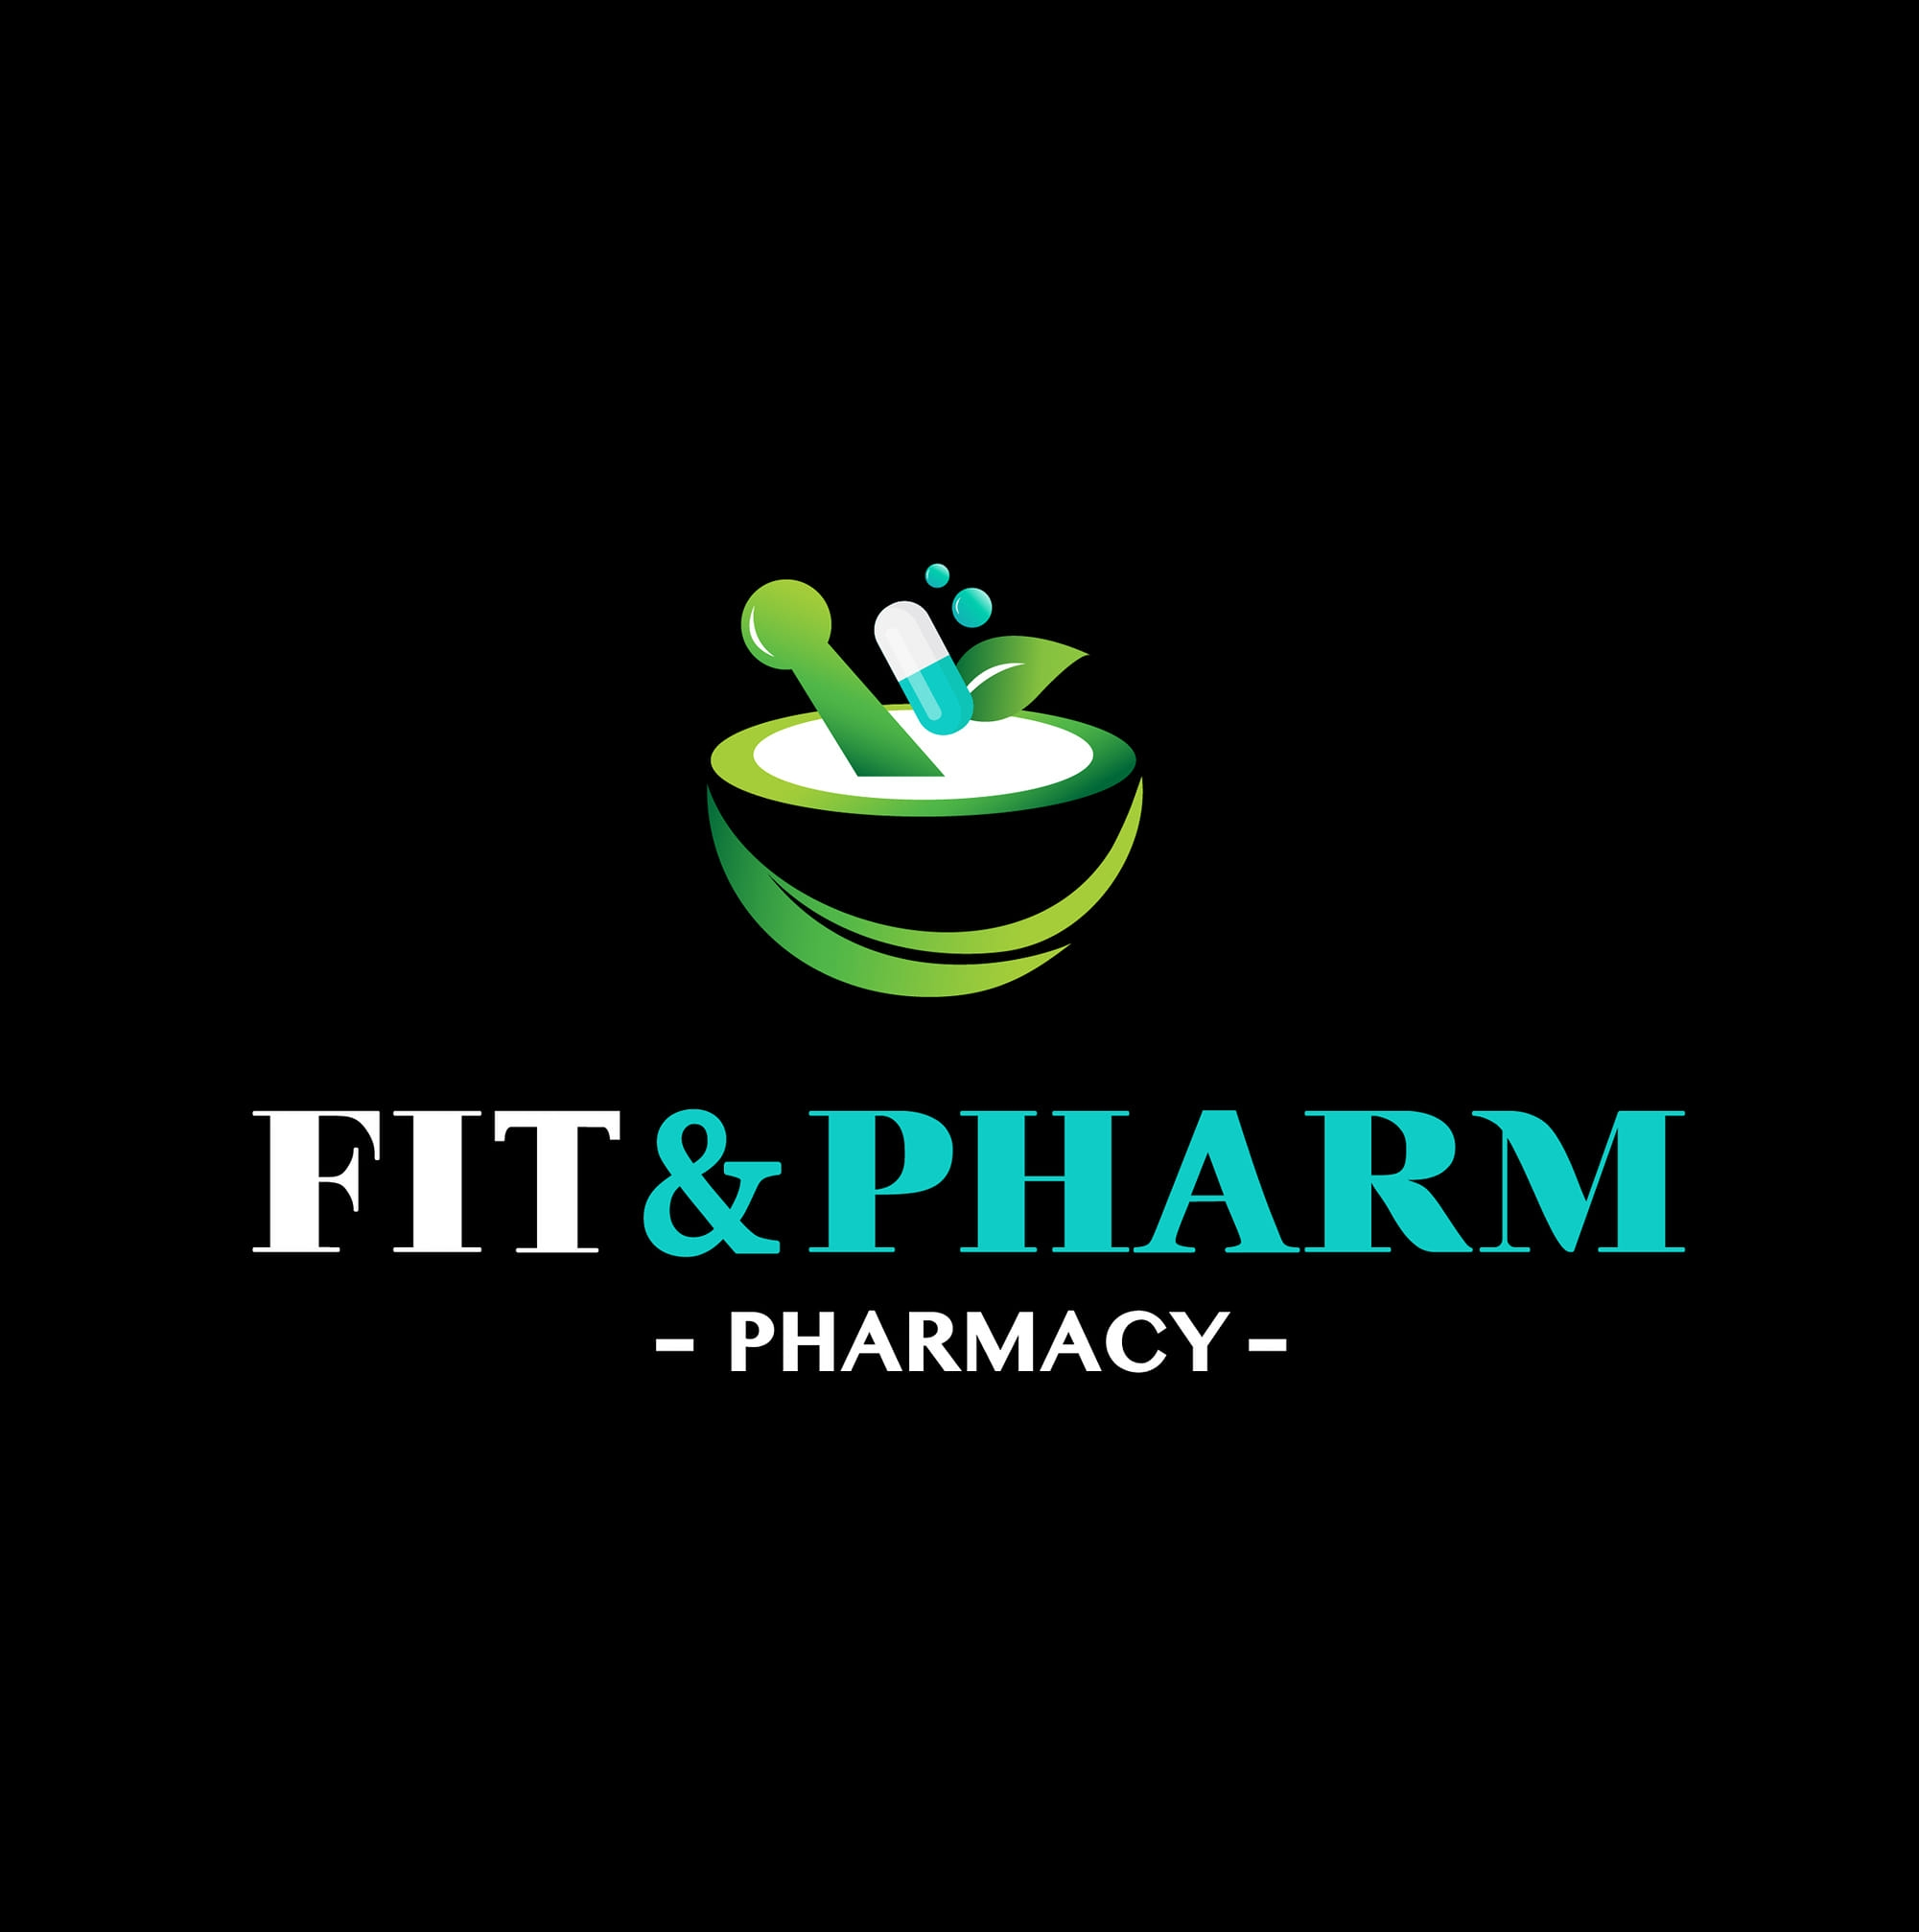 FIT-PHARM-Pharmacy.jpg